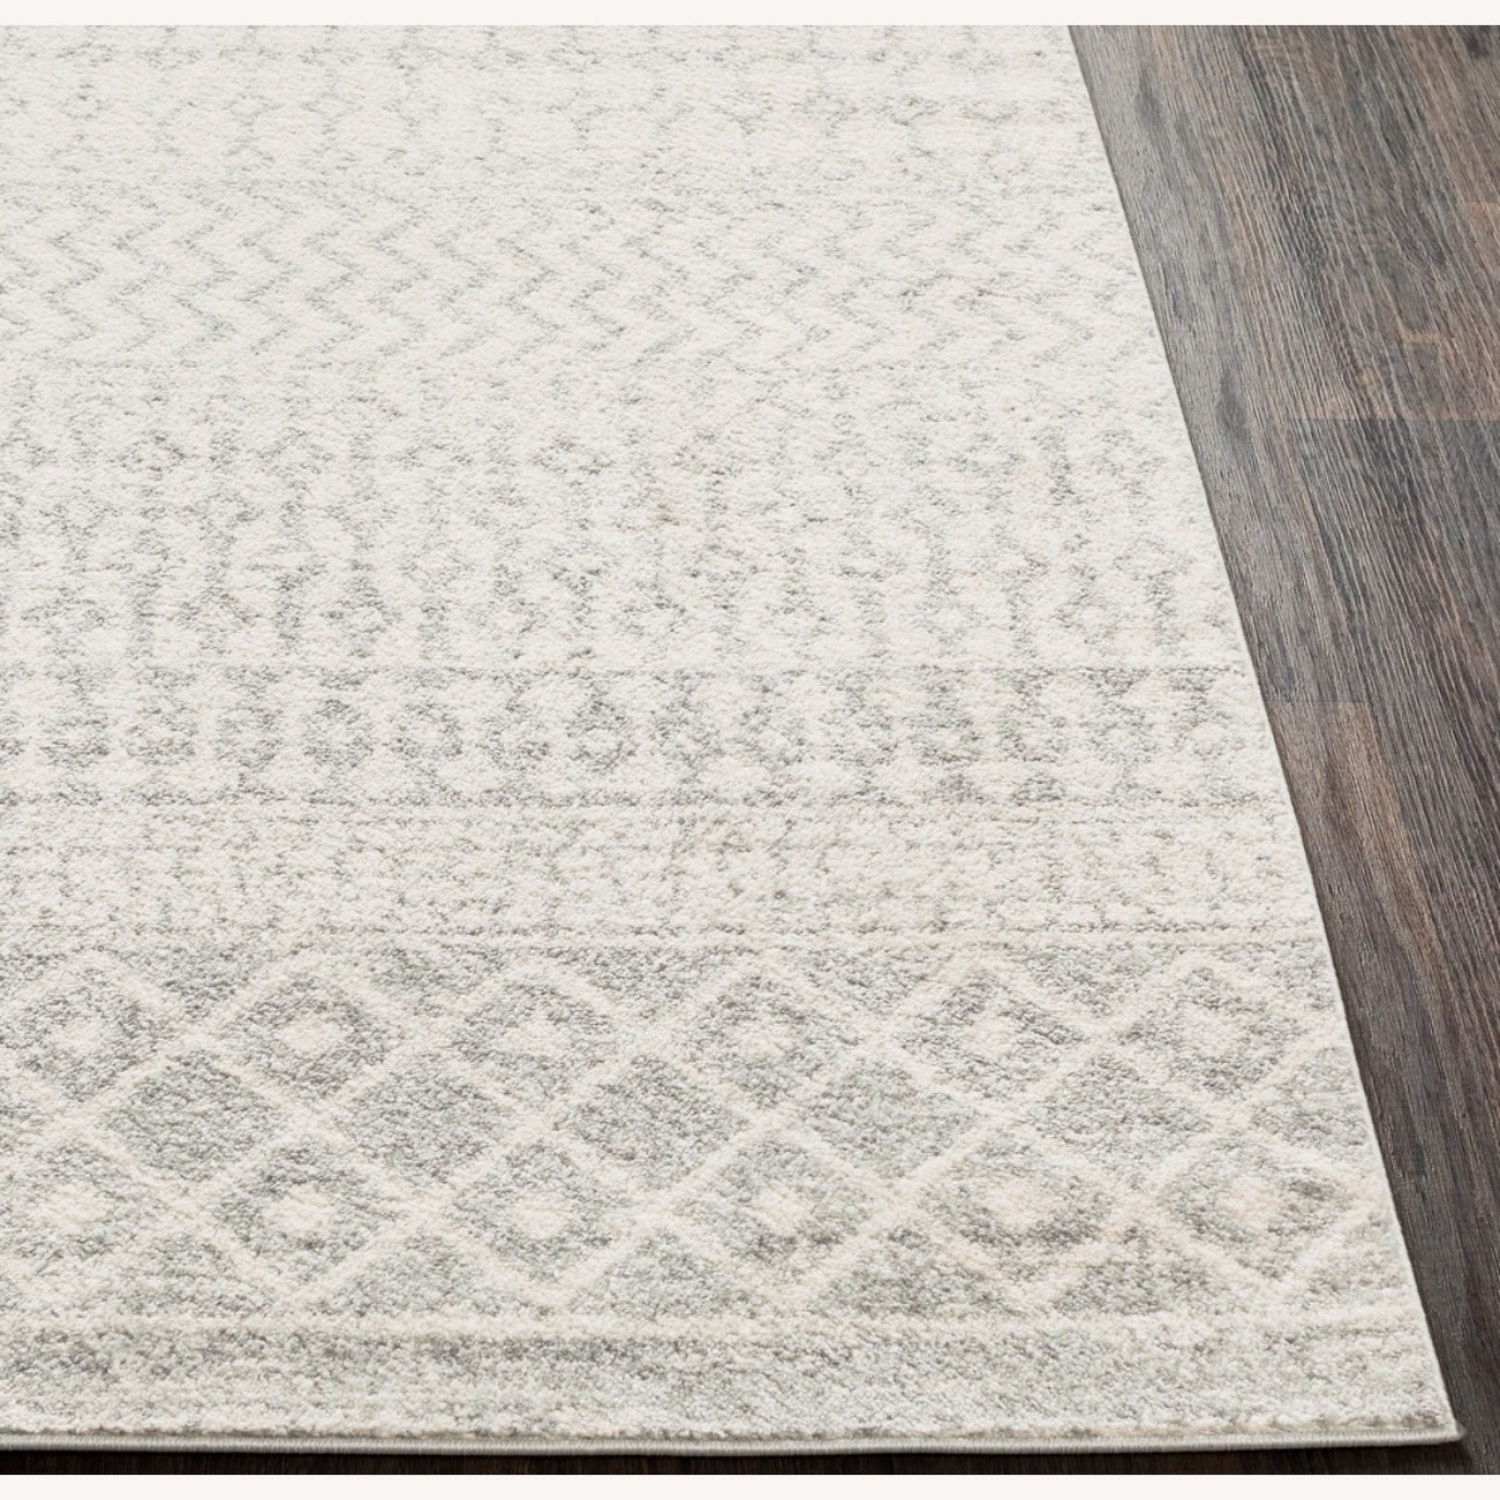 Bohemian Area Rug Antique Silver on White - image-1